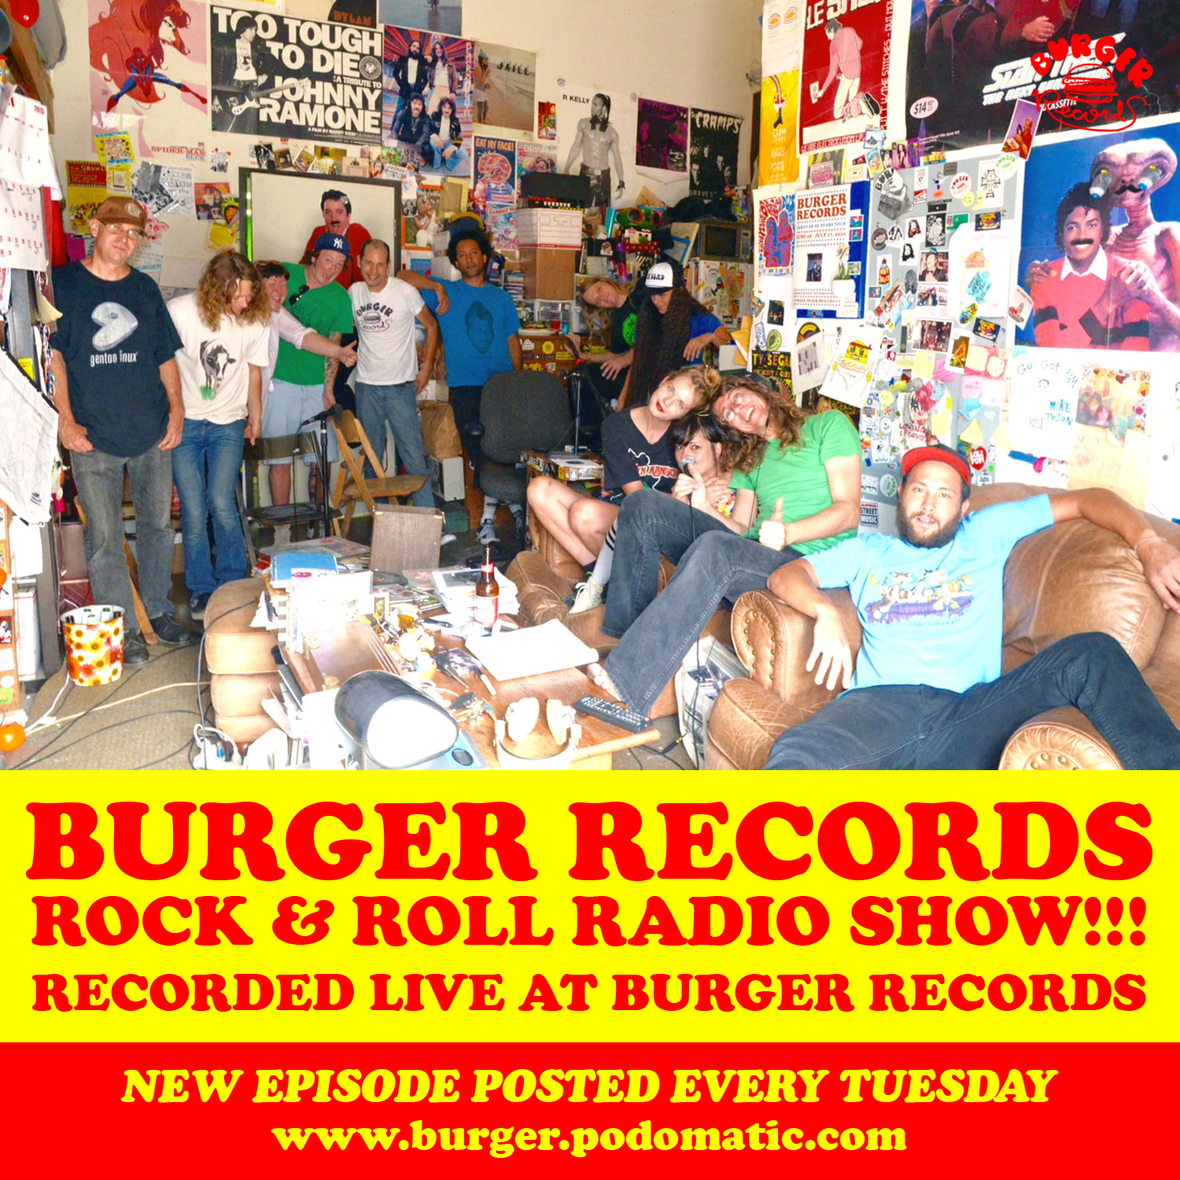 ROCK N ROLL RADIO SHOW COVER40